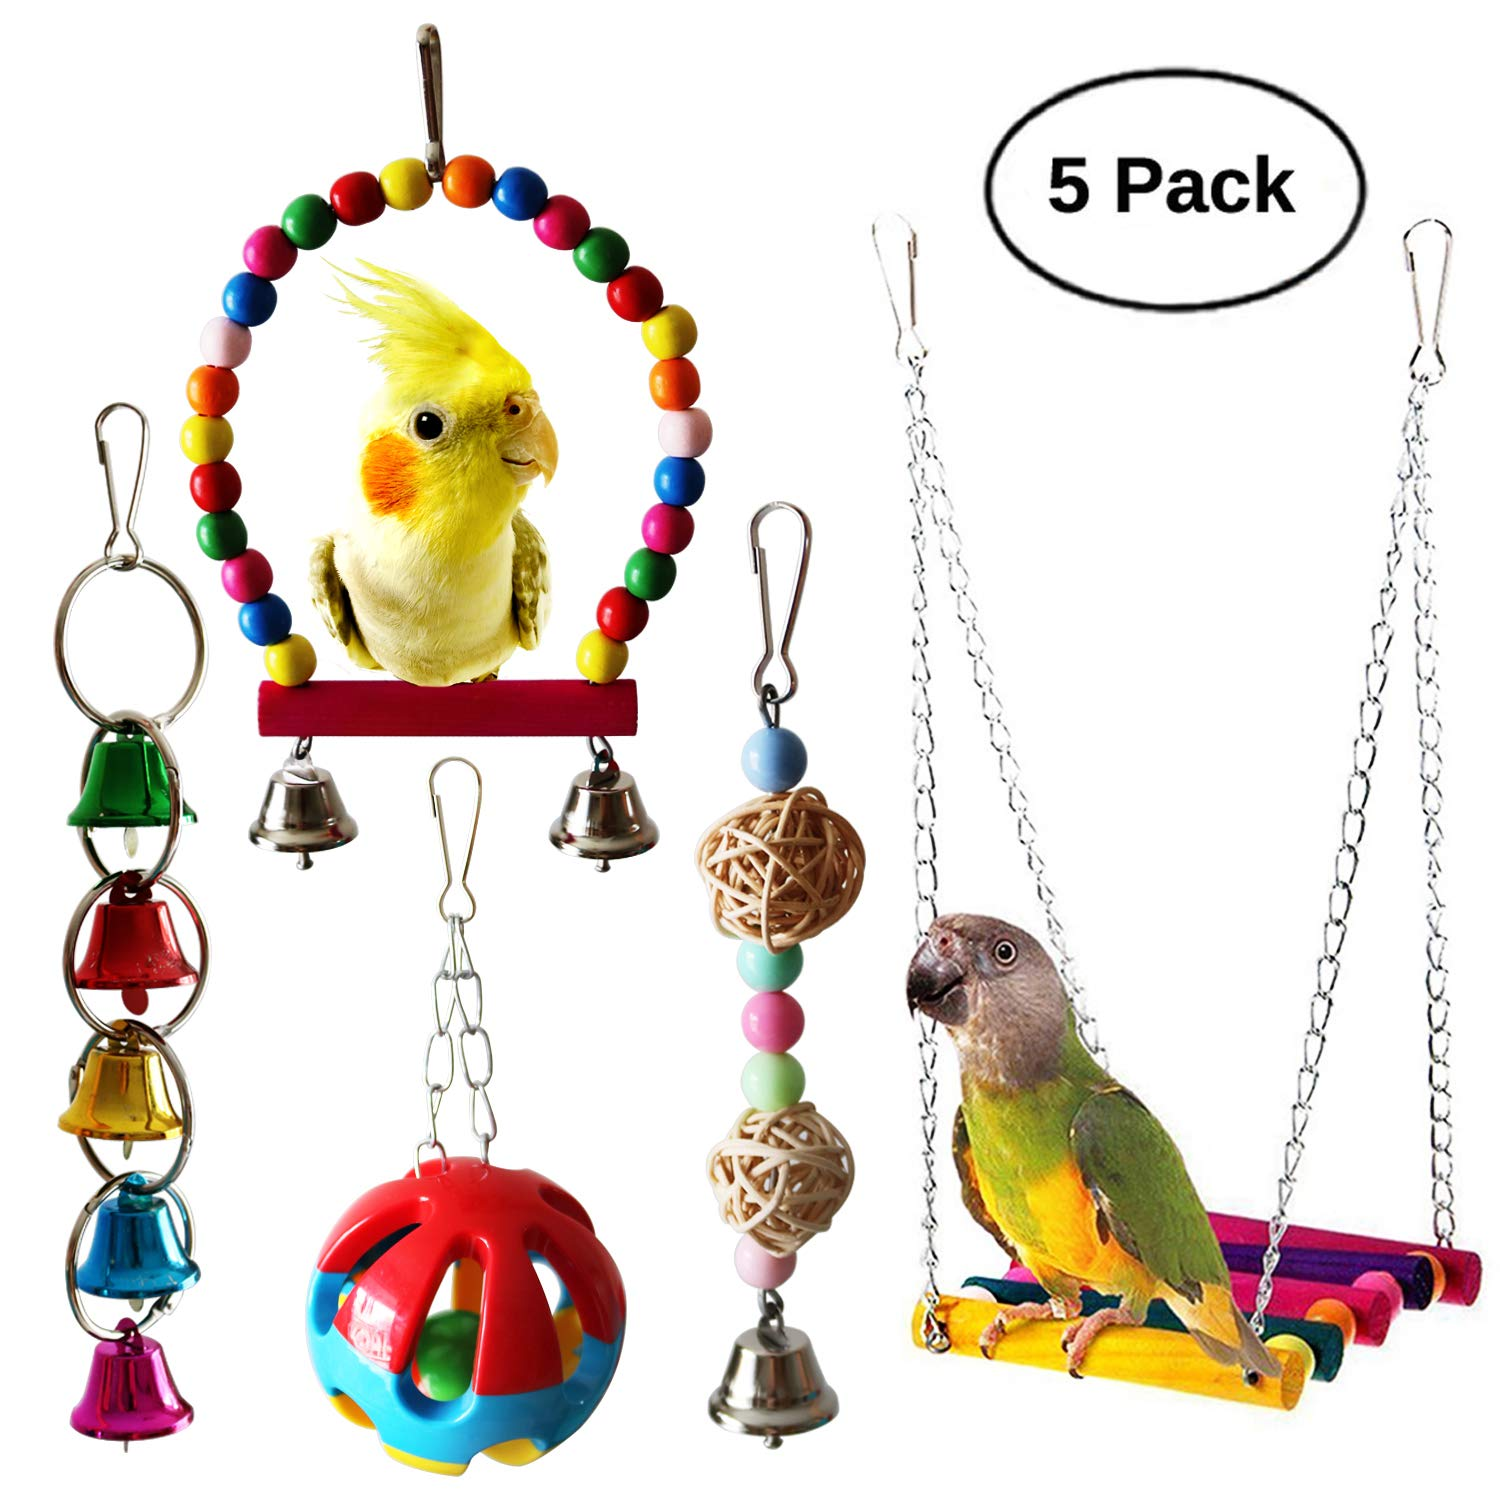 BWOGUE Bird Swing Toys with Bells Pet Parrot Cage Hammock Hanging Toy Perch for Budgie Love Birds Conures Small Parakeet Finches Cockatiels (5 Pack) by BWOGUE